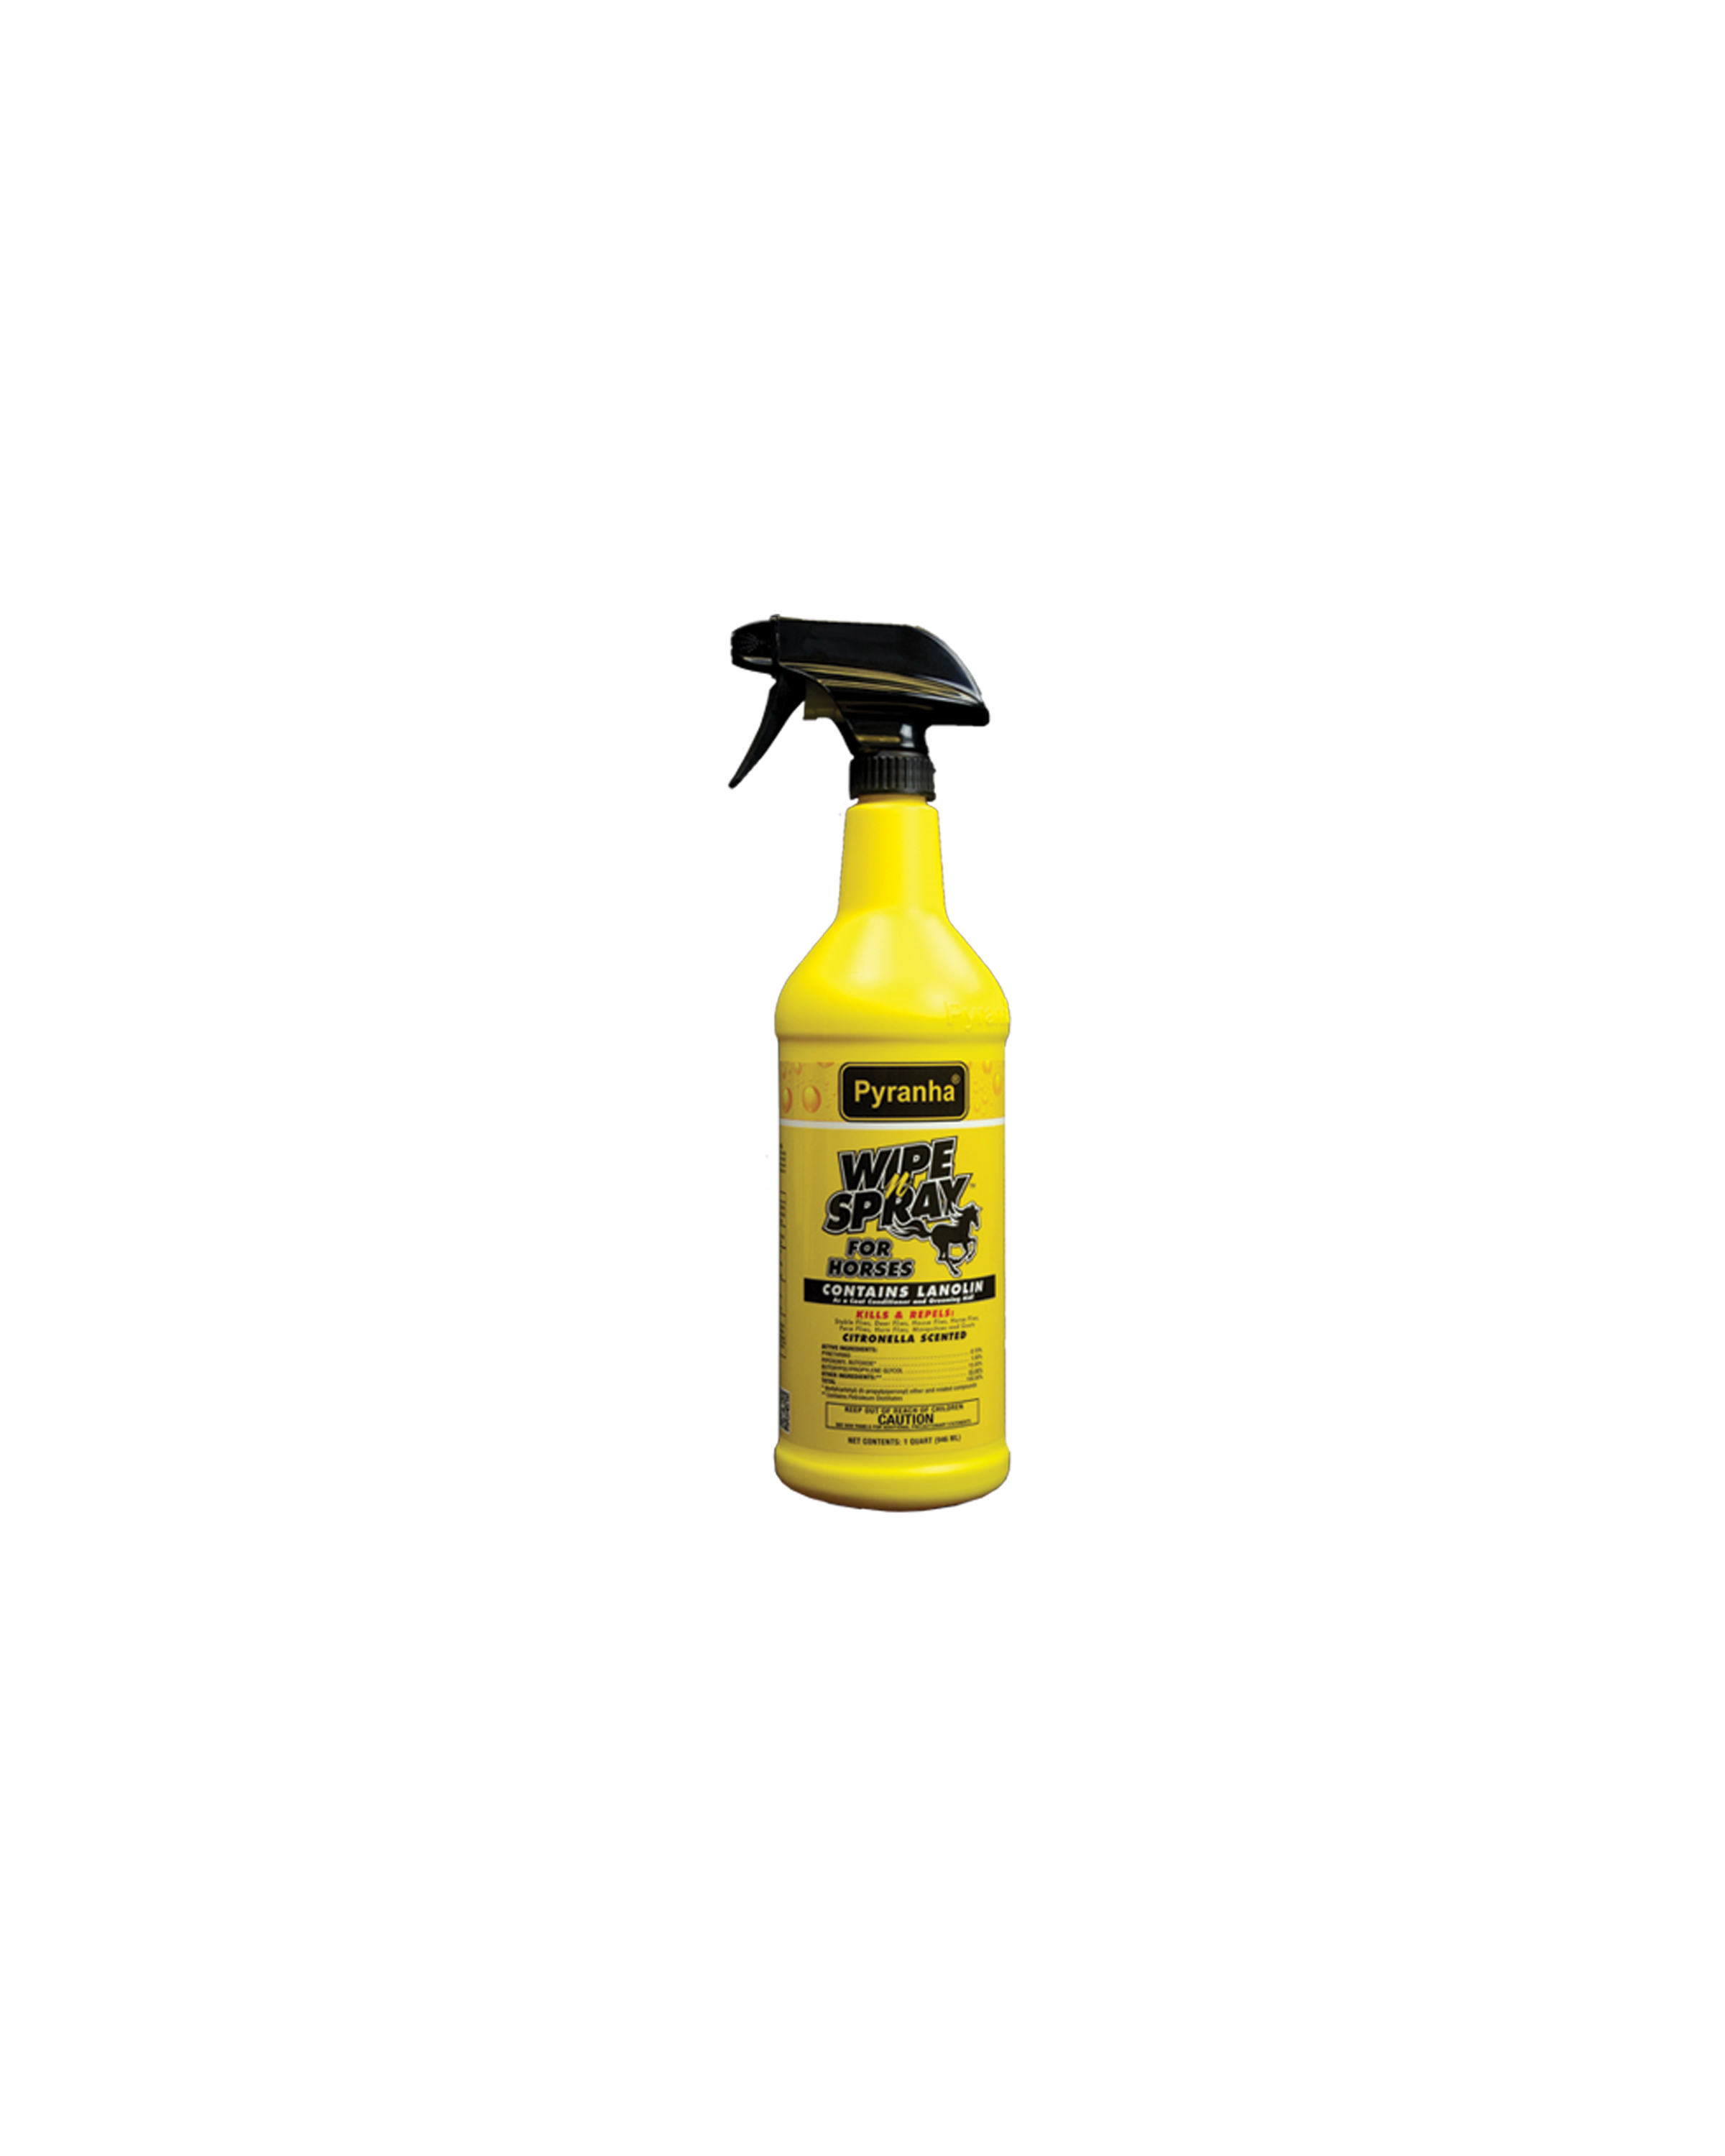 Pyranha Wipe N Spray 32 oz